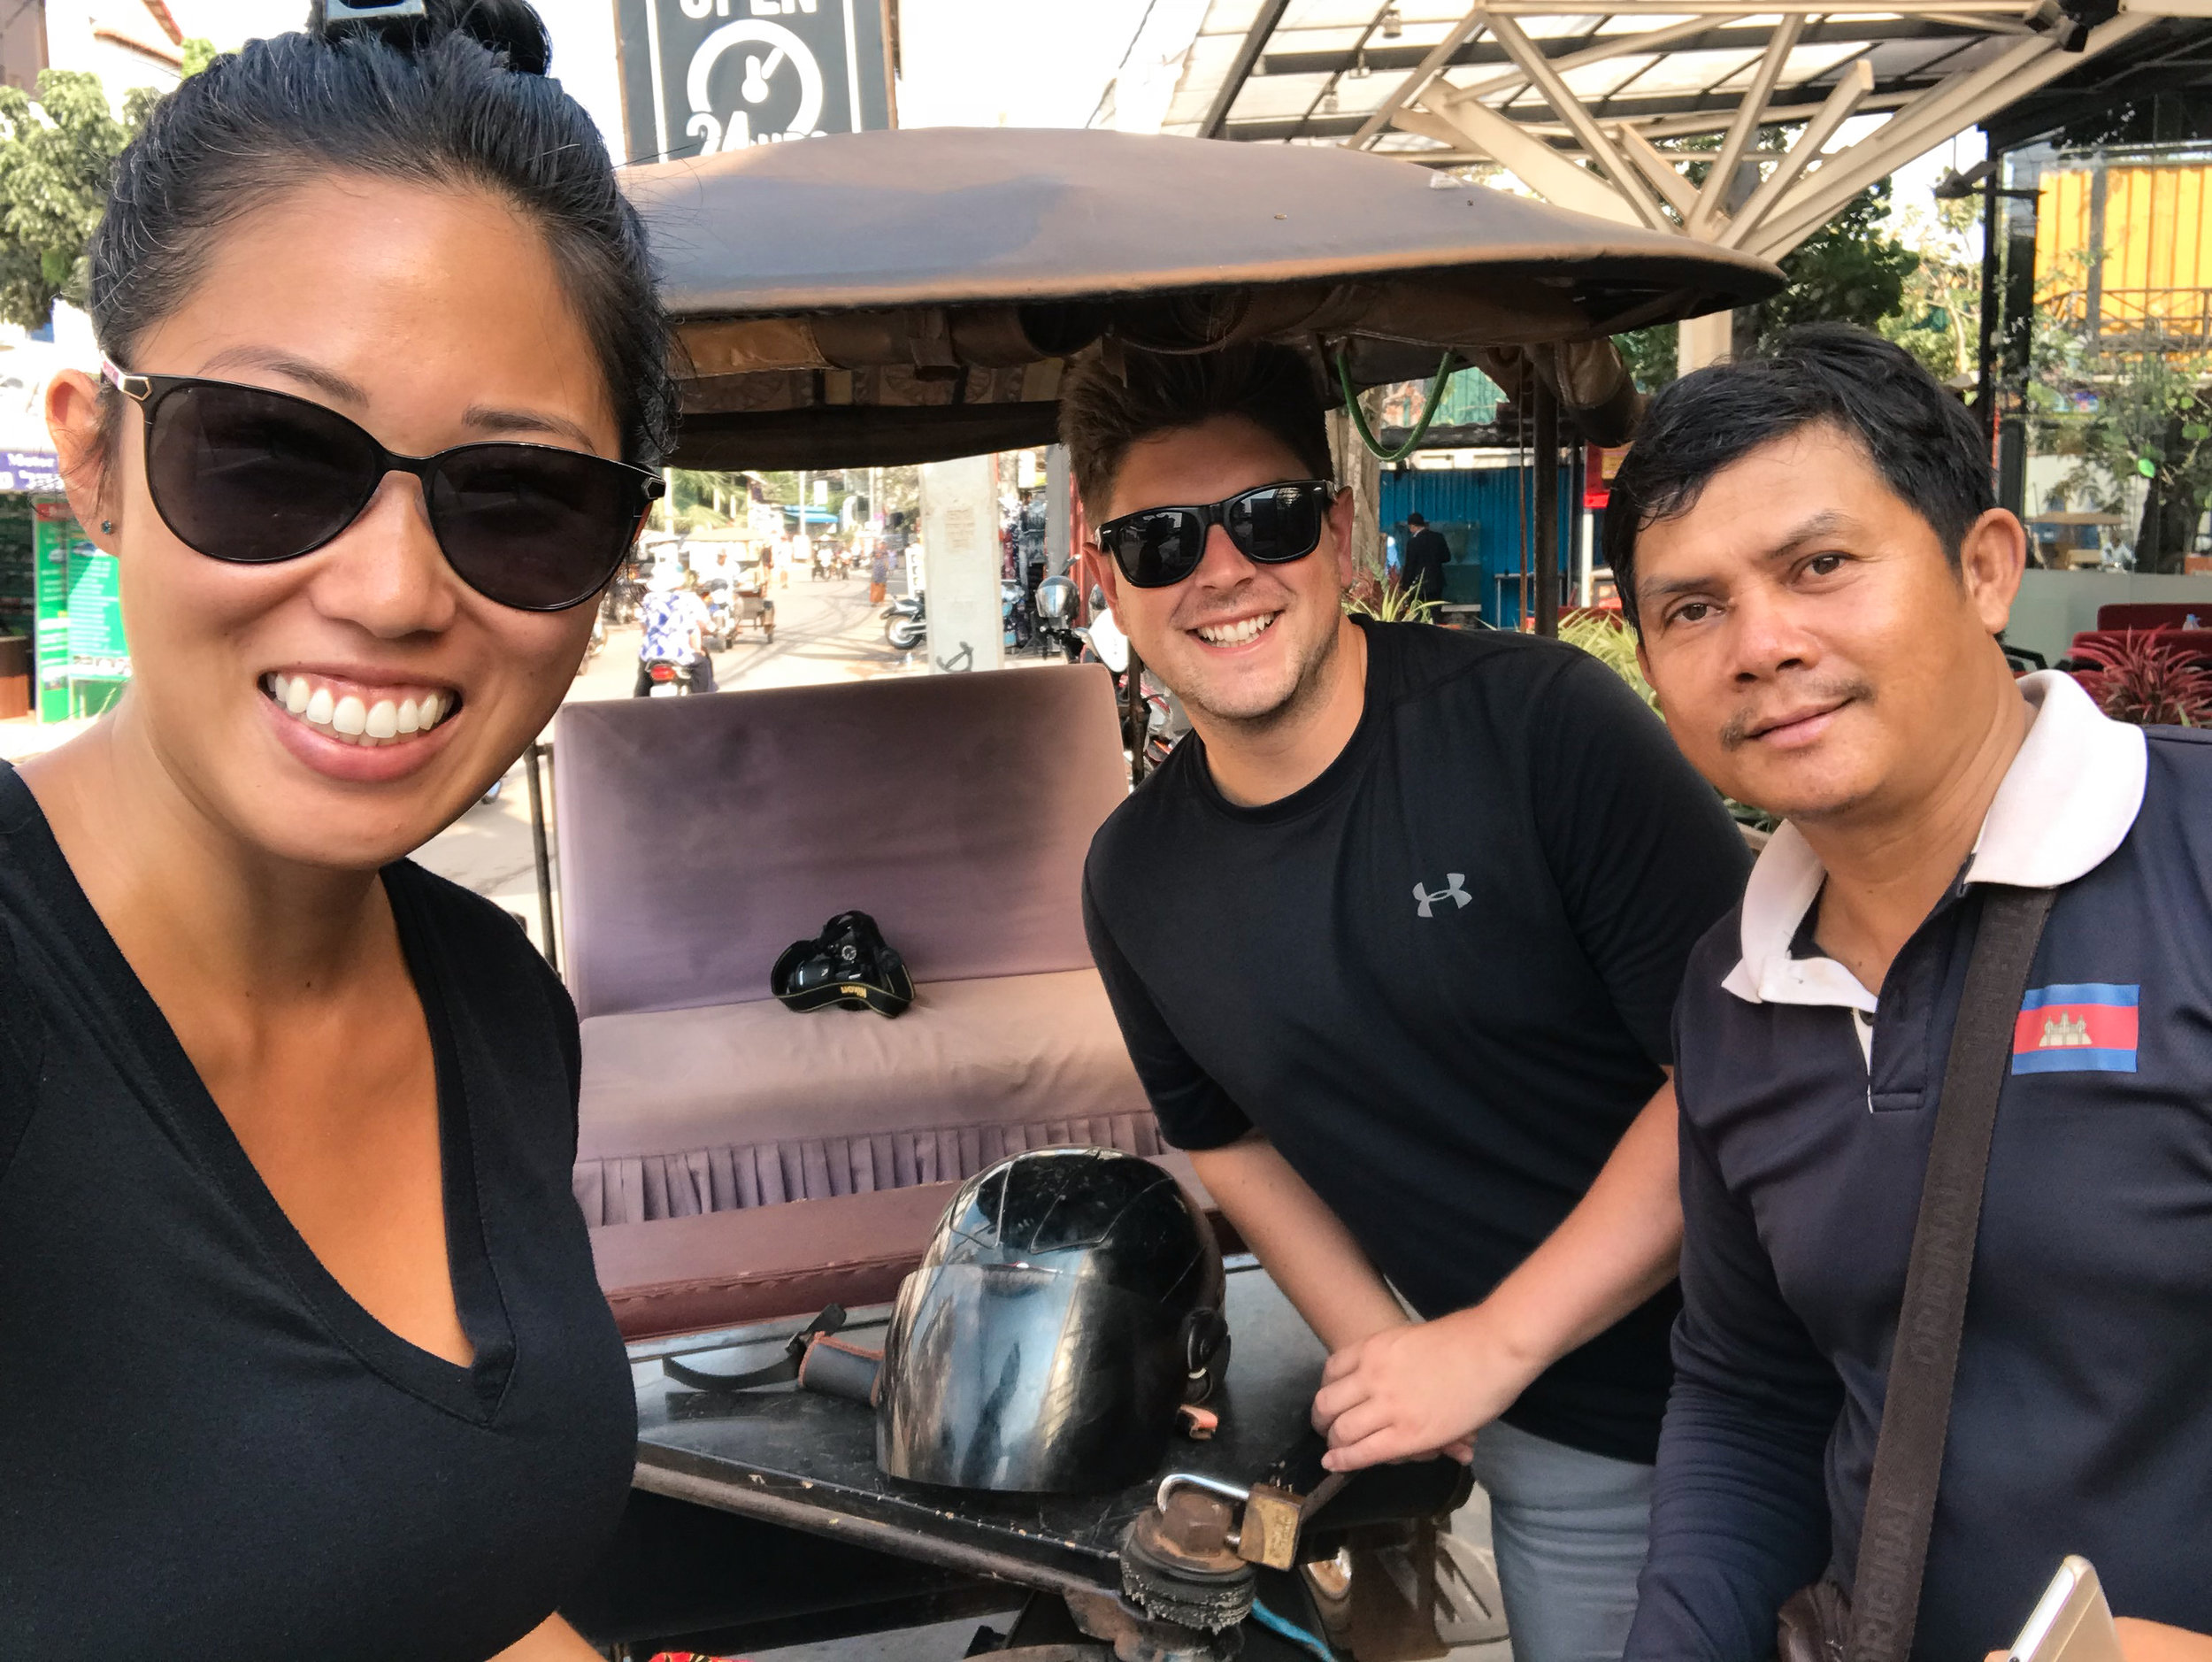 Smey, our Tuk Tuk driver and tour guide for 3 days in Siem Reap.